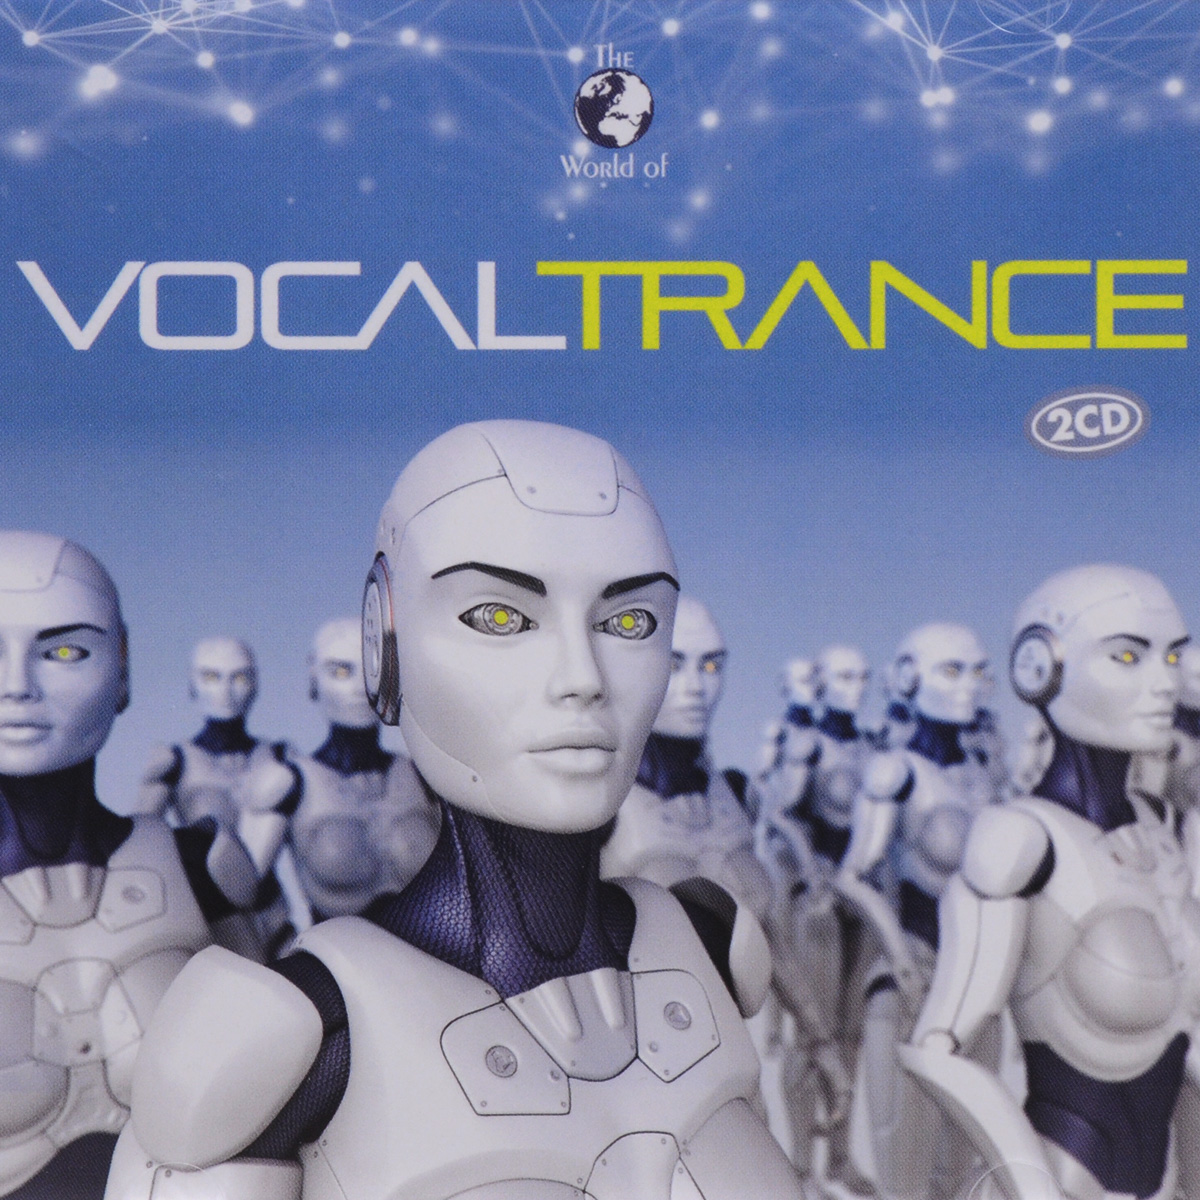 Vocal Trance (2 CD)